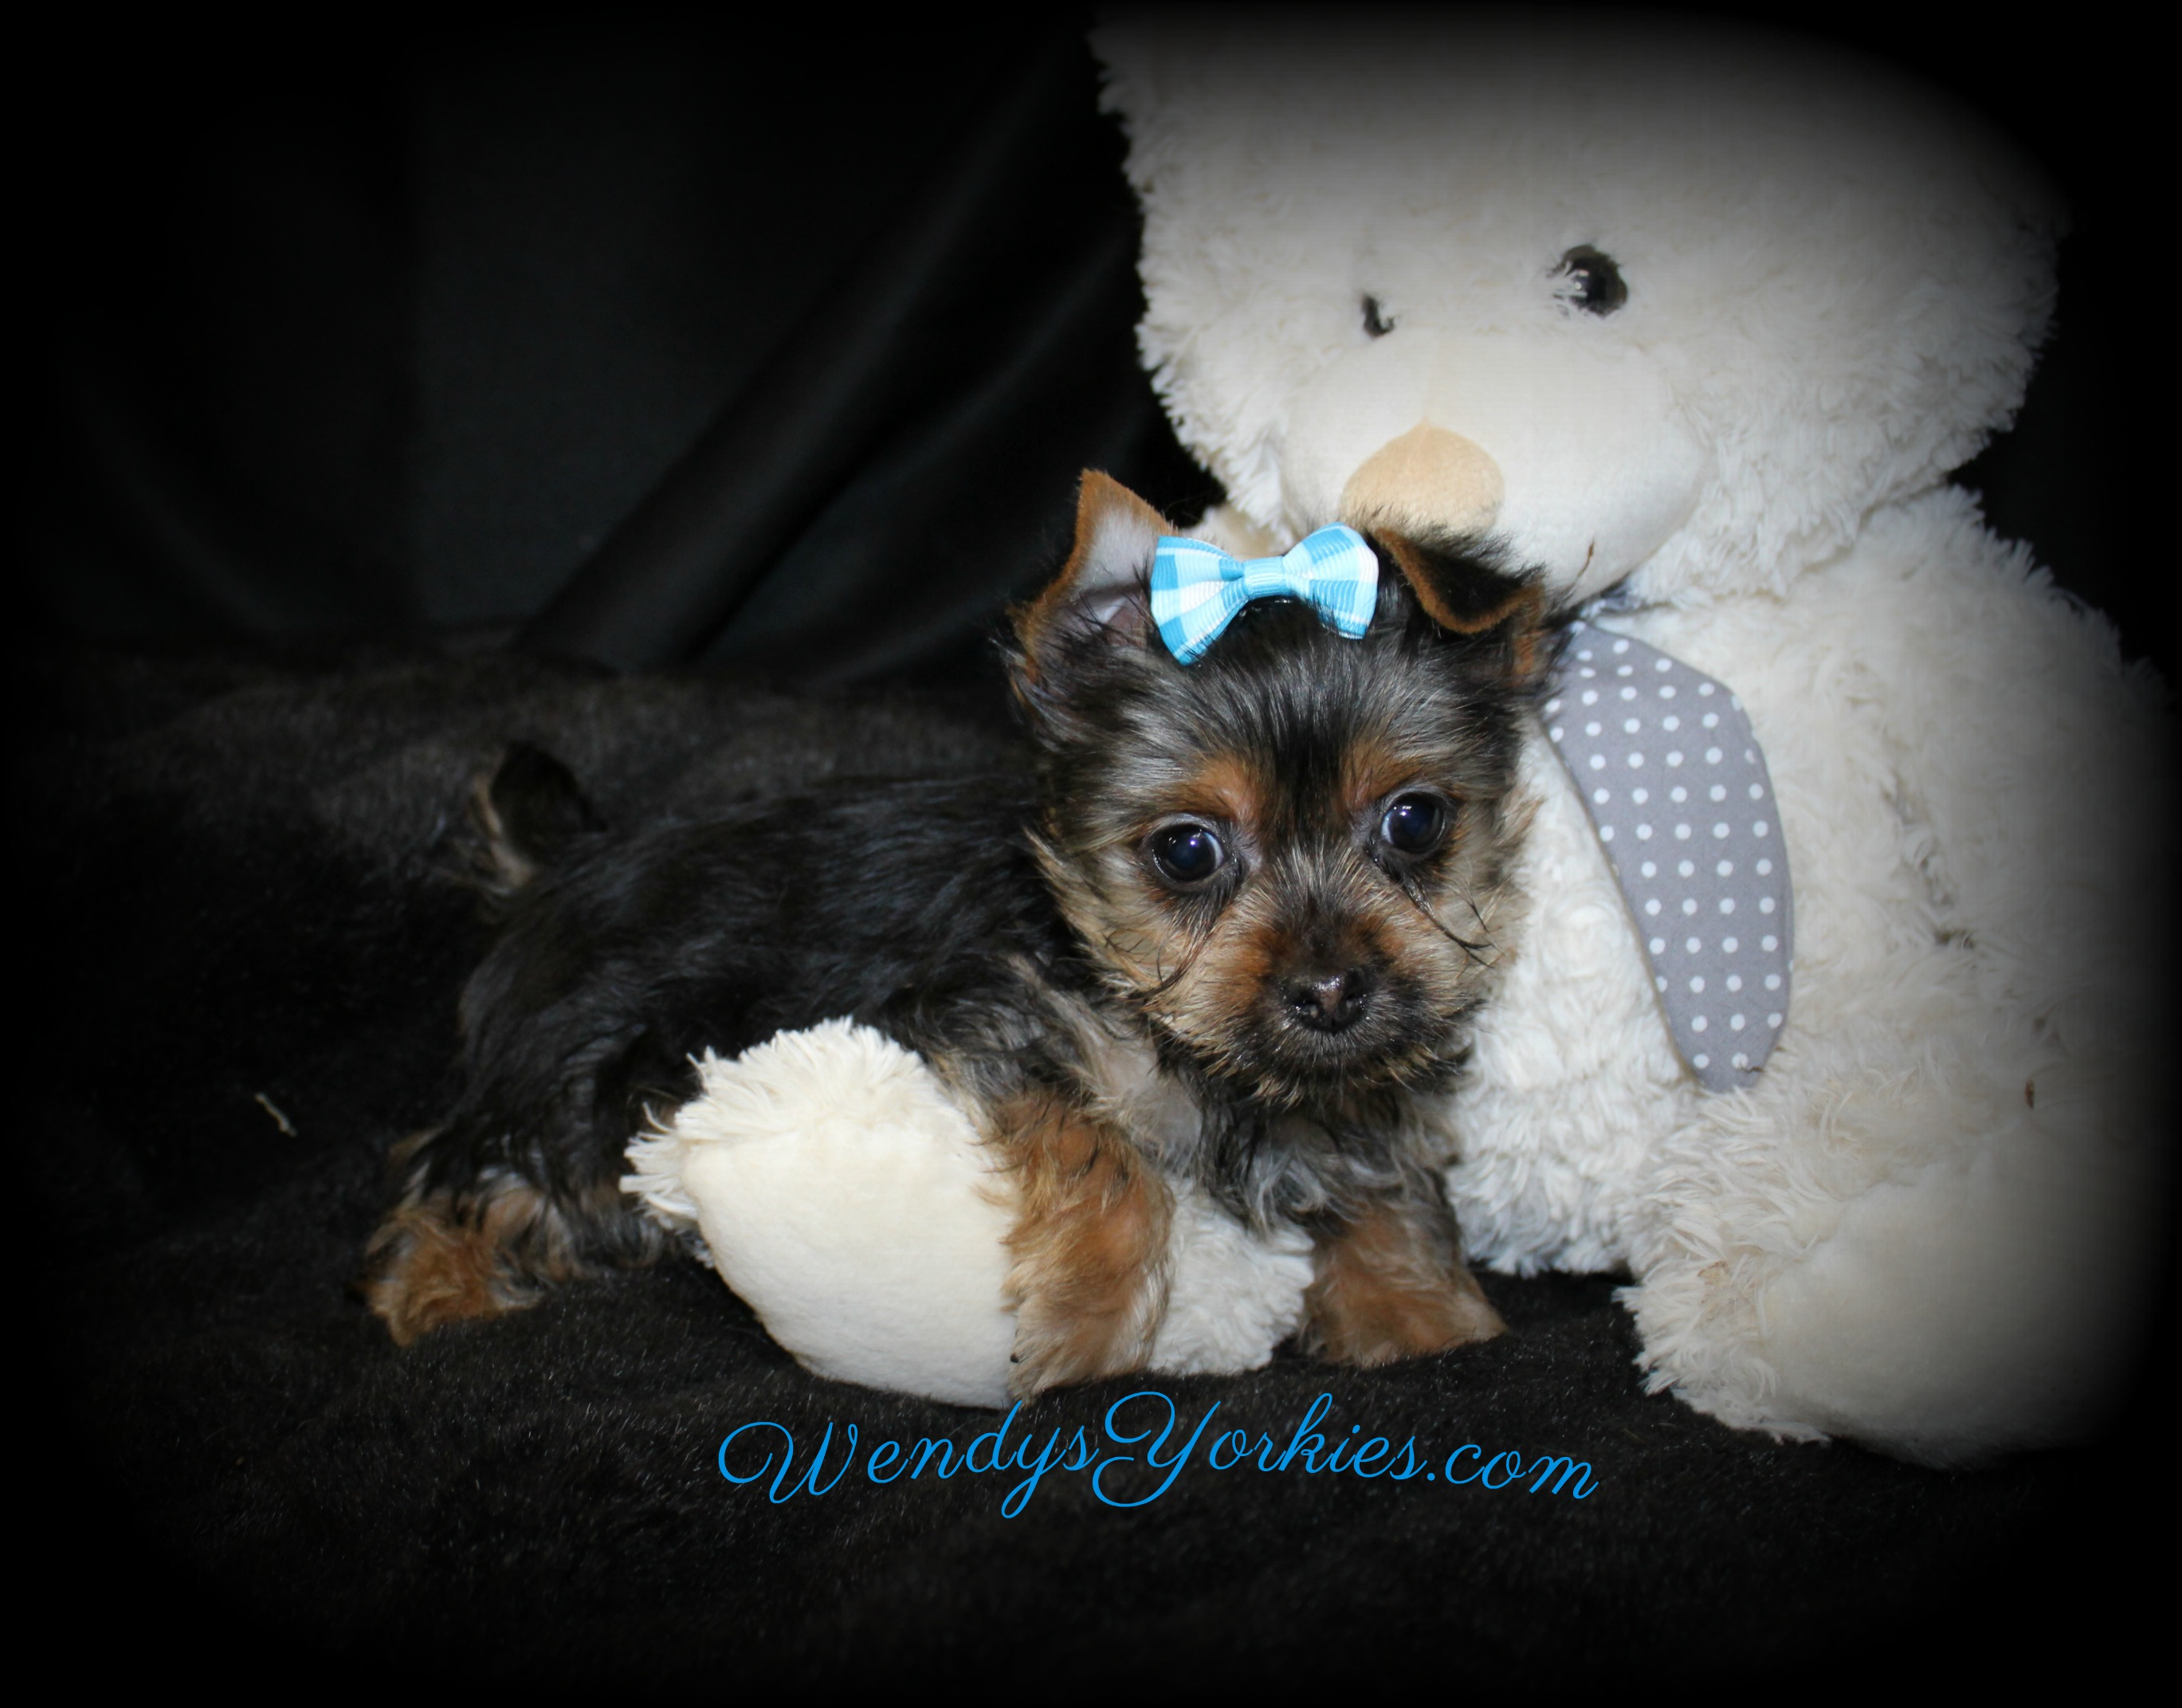 Tiny Teacup Male Yorkie puppy for sale, Dixie m3, WendysYorkies.com